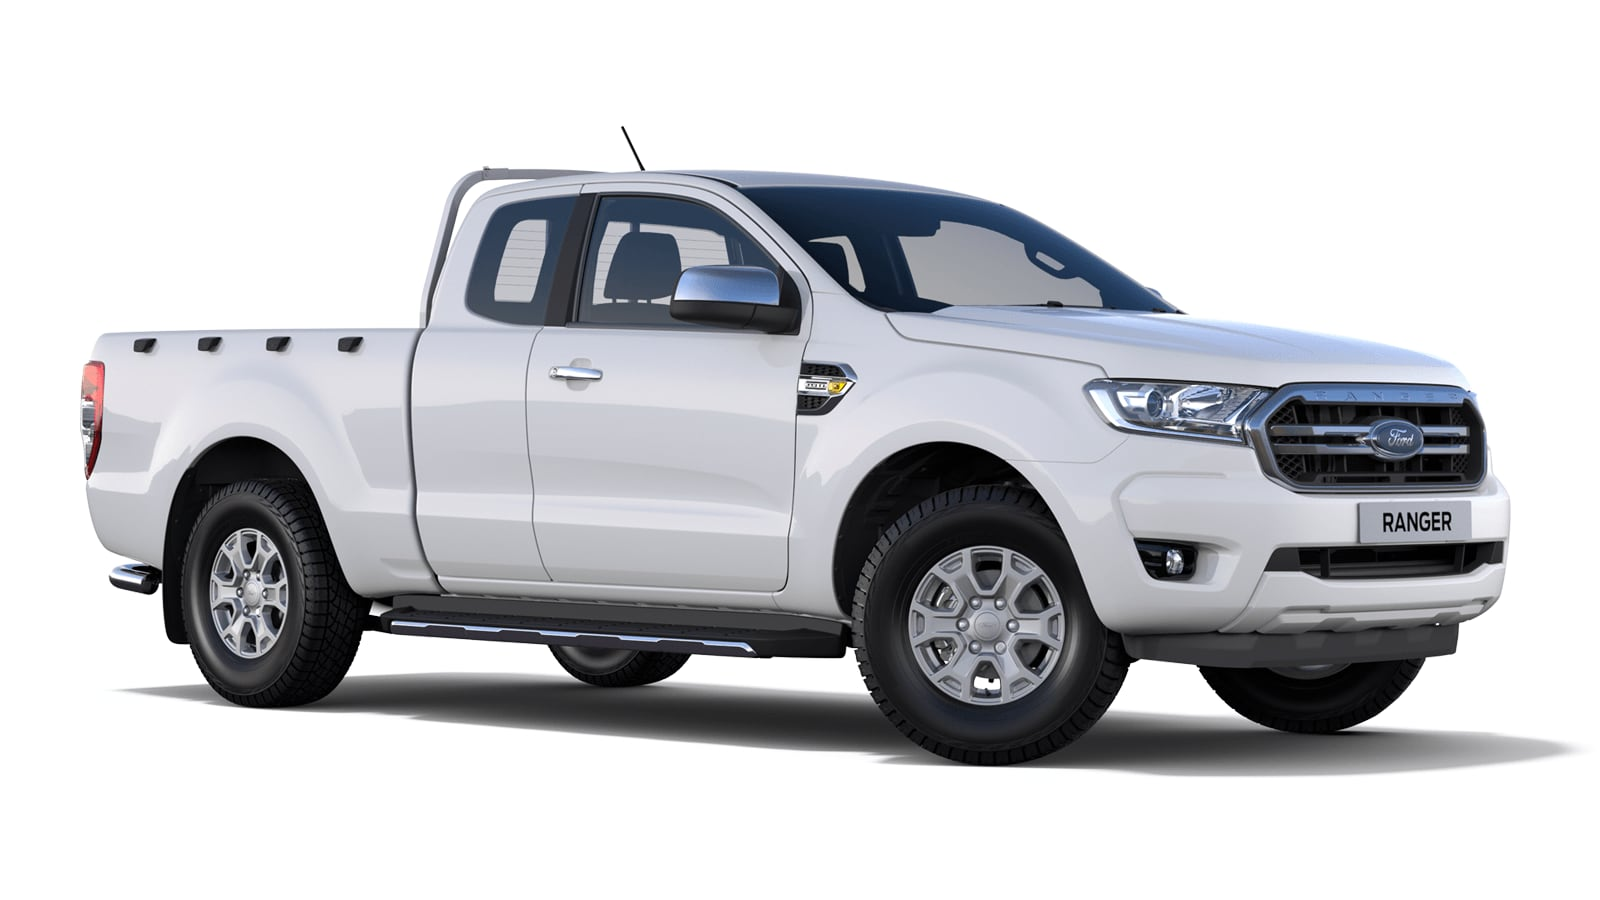 NEW RANGER XLT Super Cab in Frozen White